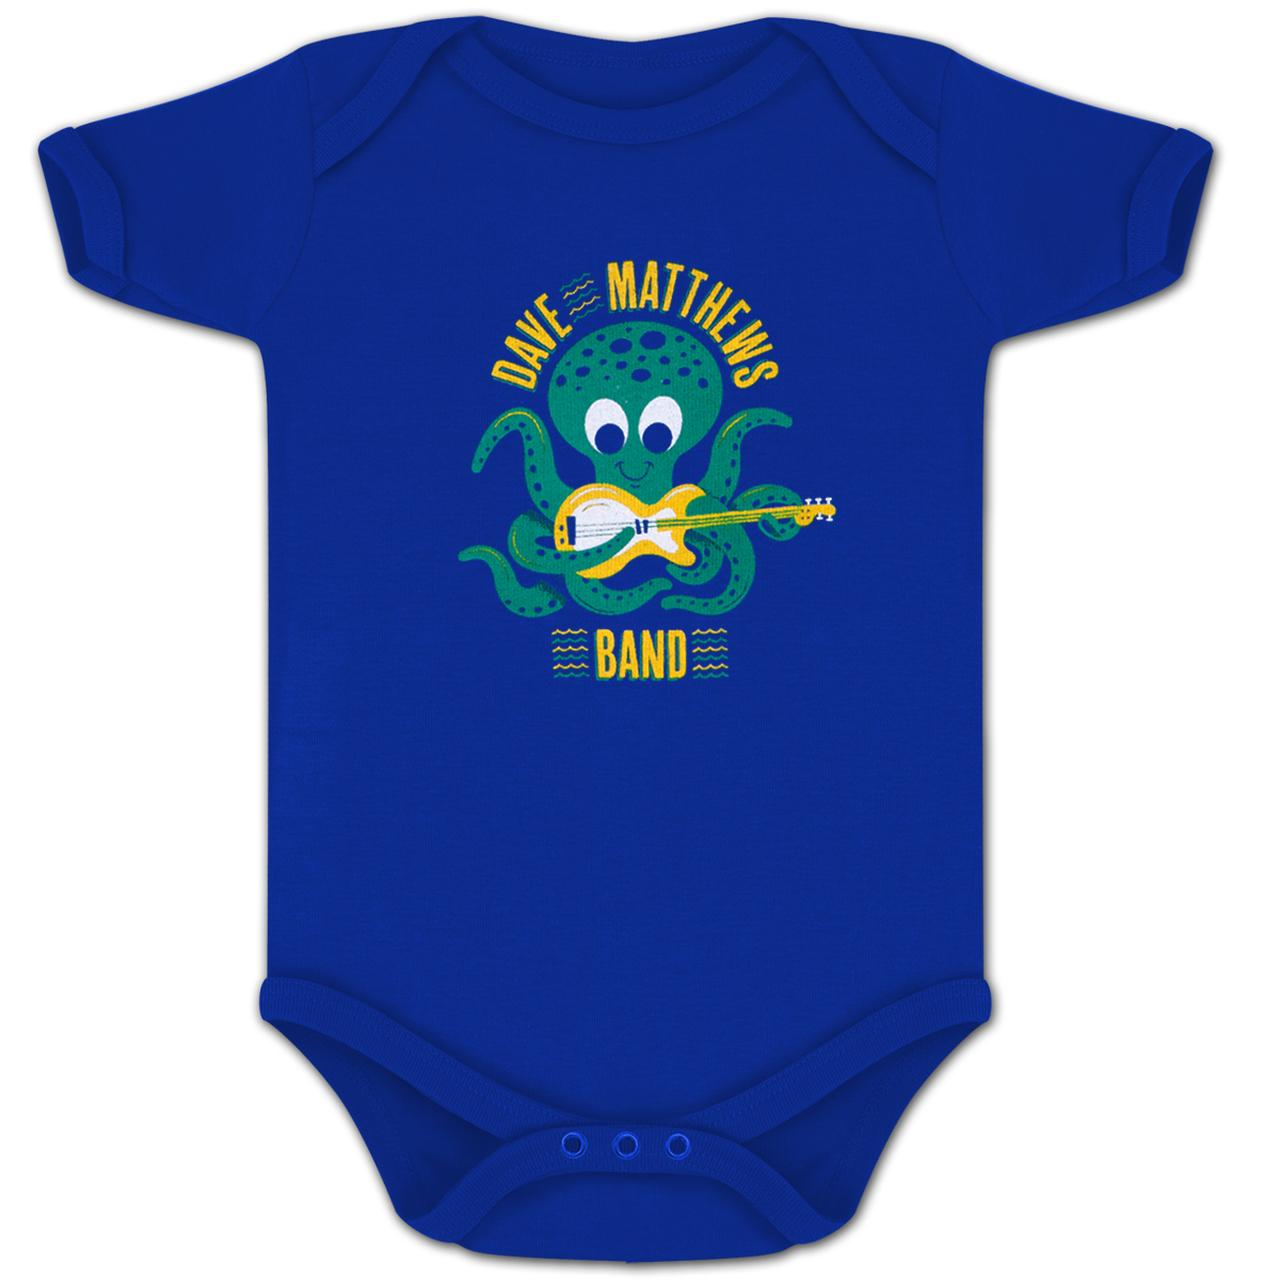 Dave Matthews Band Baby Clothes